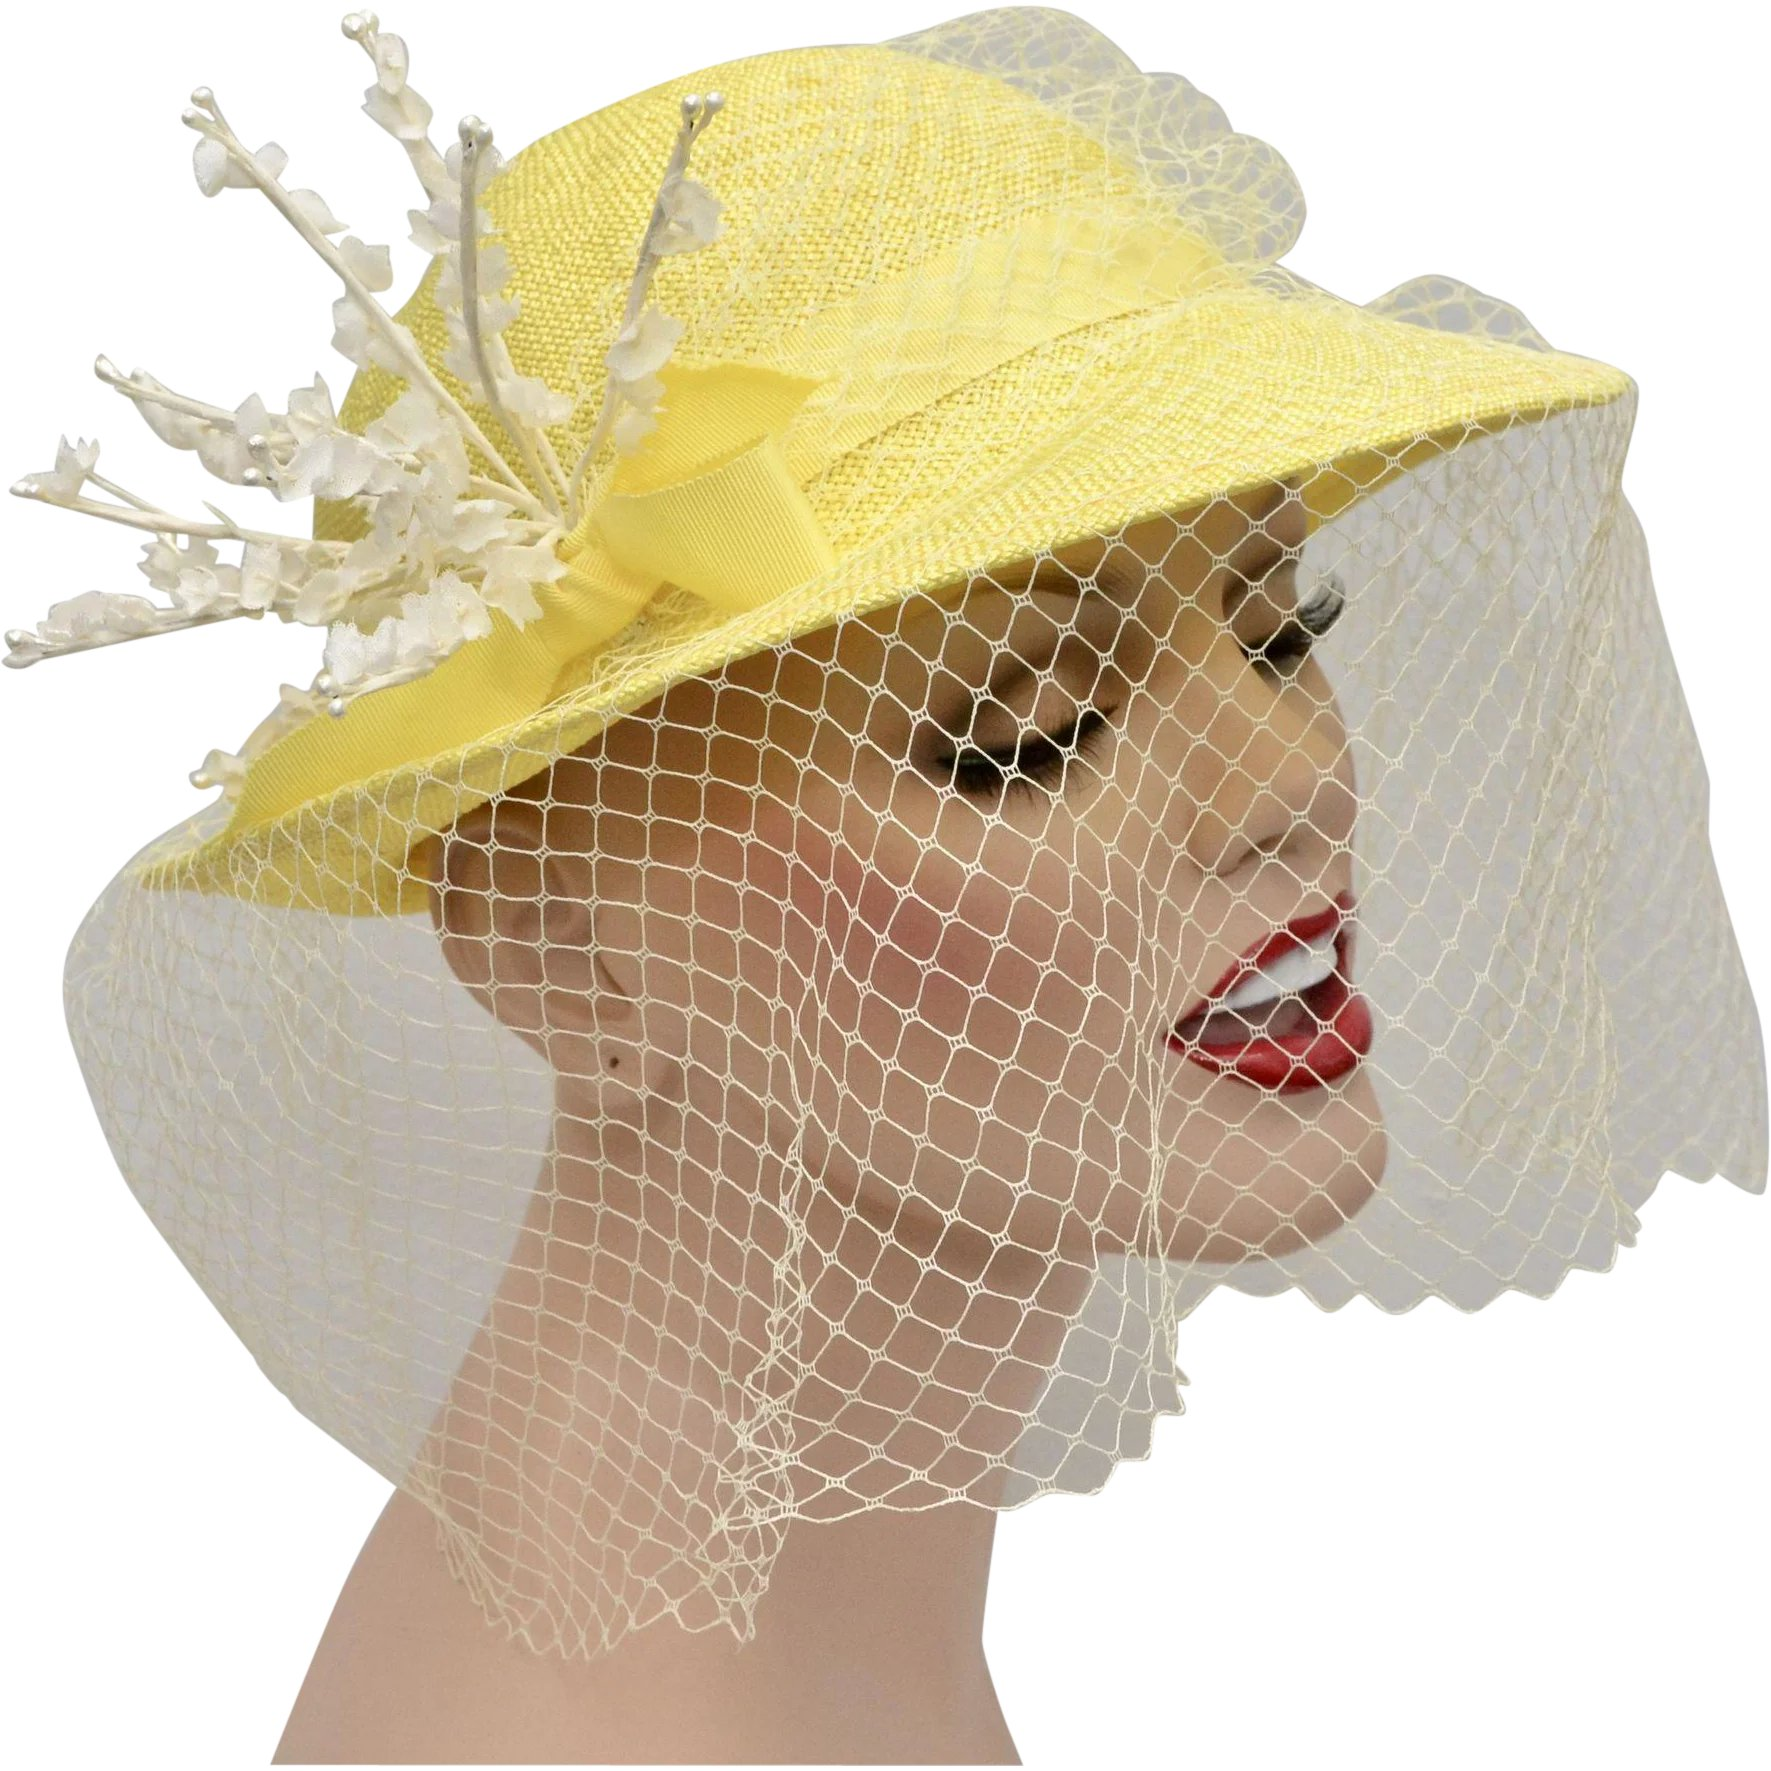 4f00fd1db4d Canary Yellow Woven Ladies Netted Hat w/ White Flower Embellishment :  Kitsch & Couture | Ruby Lane